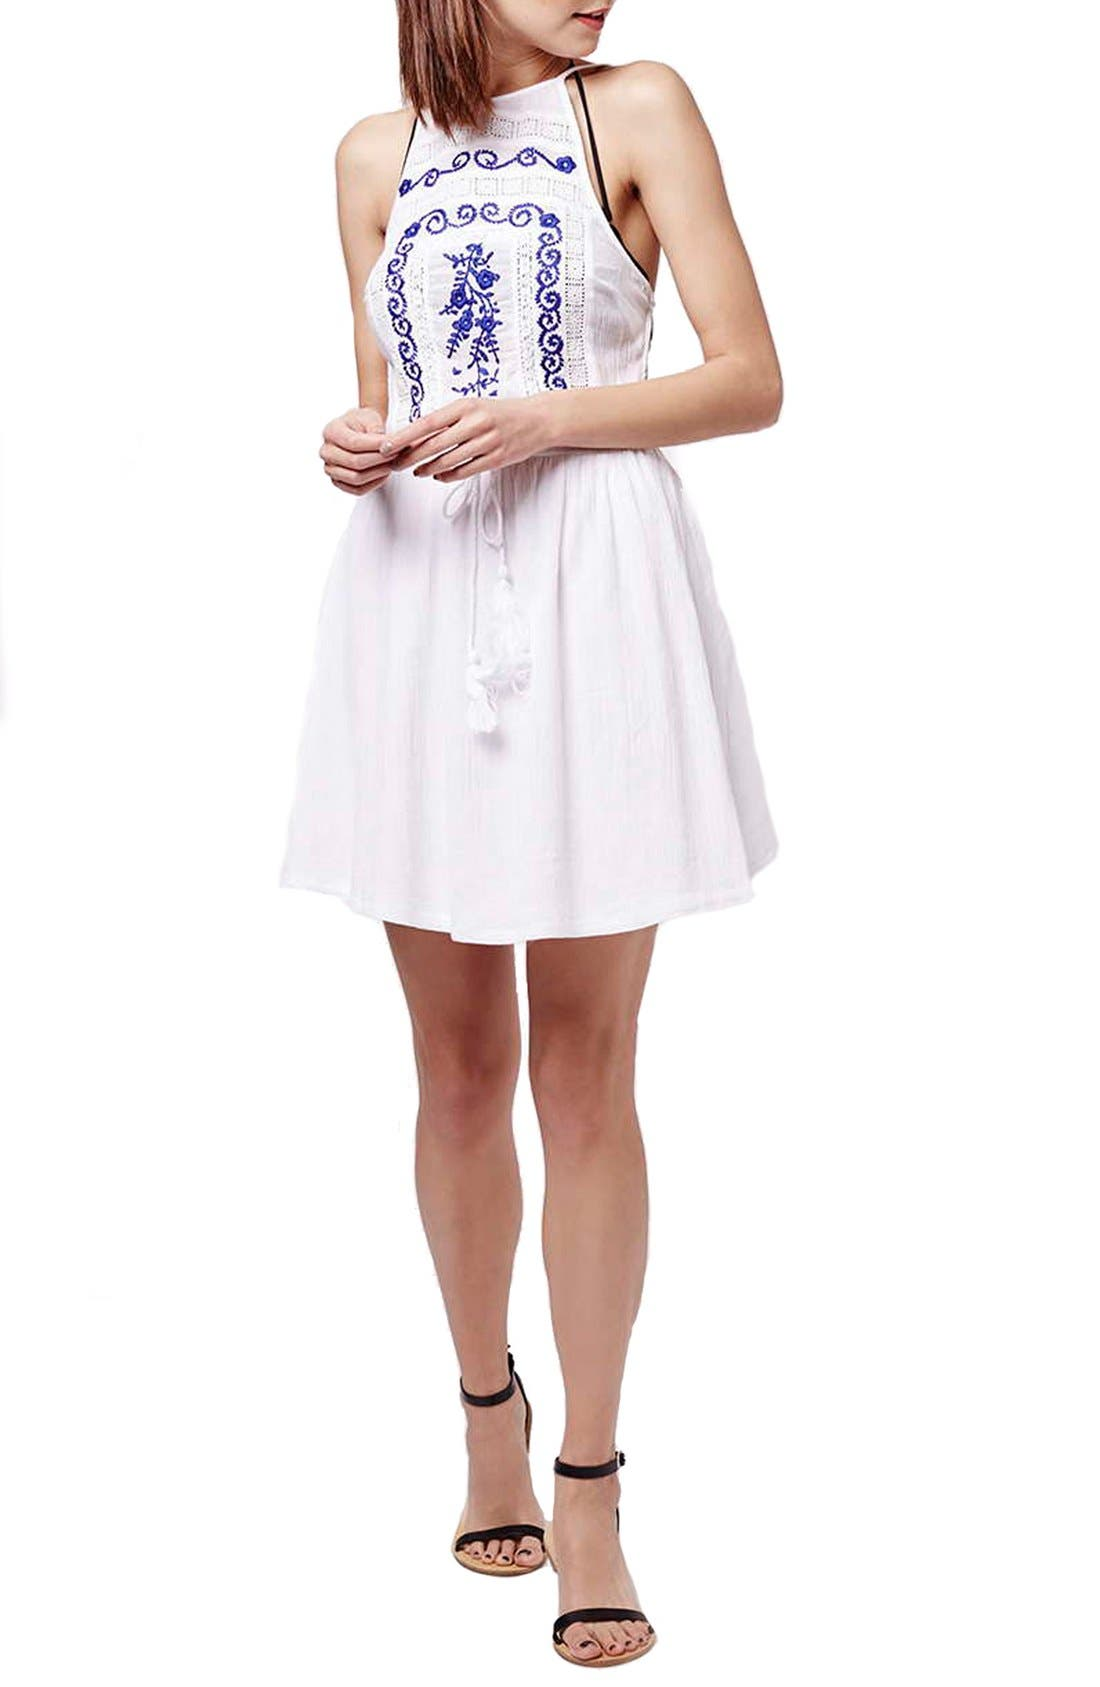 Alternate Image 1 Selected - Topshop 'Claud' Embroidered Sleeveless Sundress Cover-Up